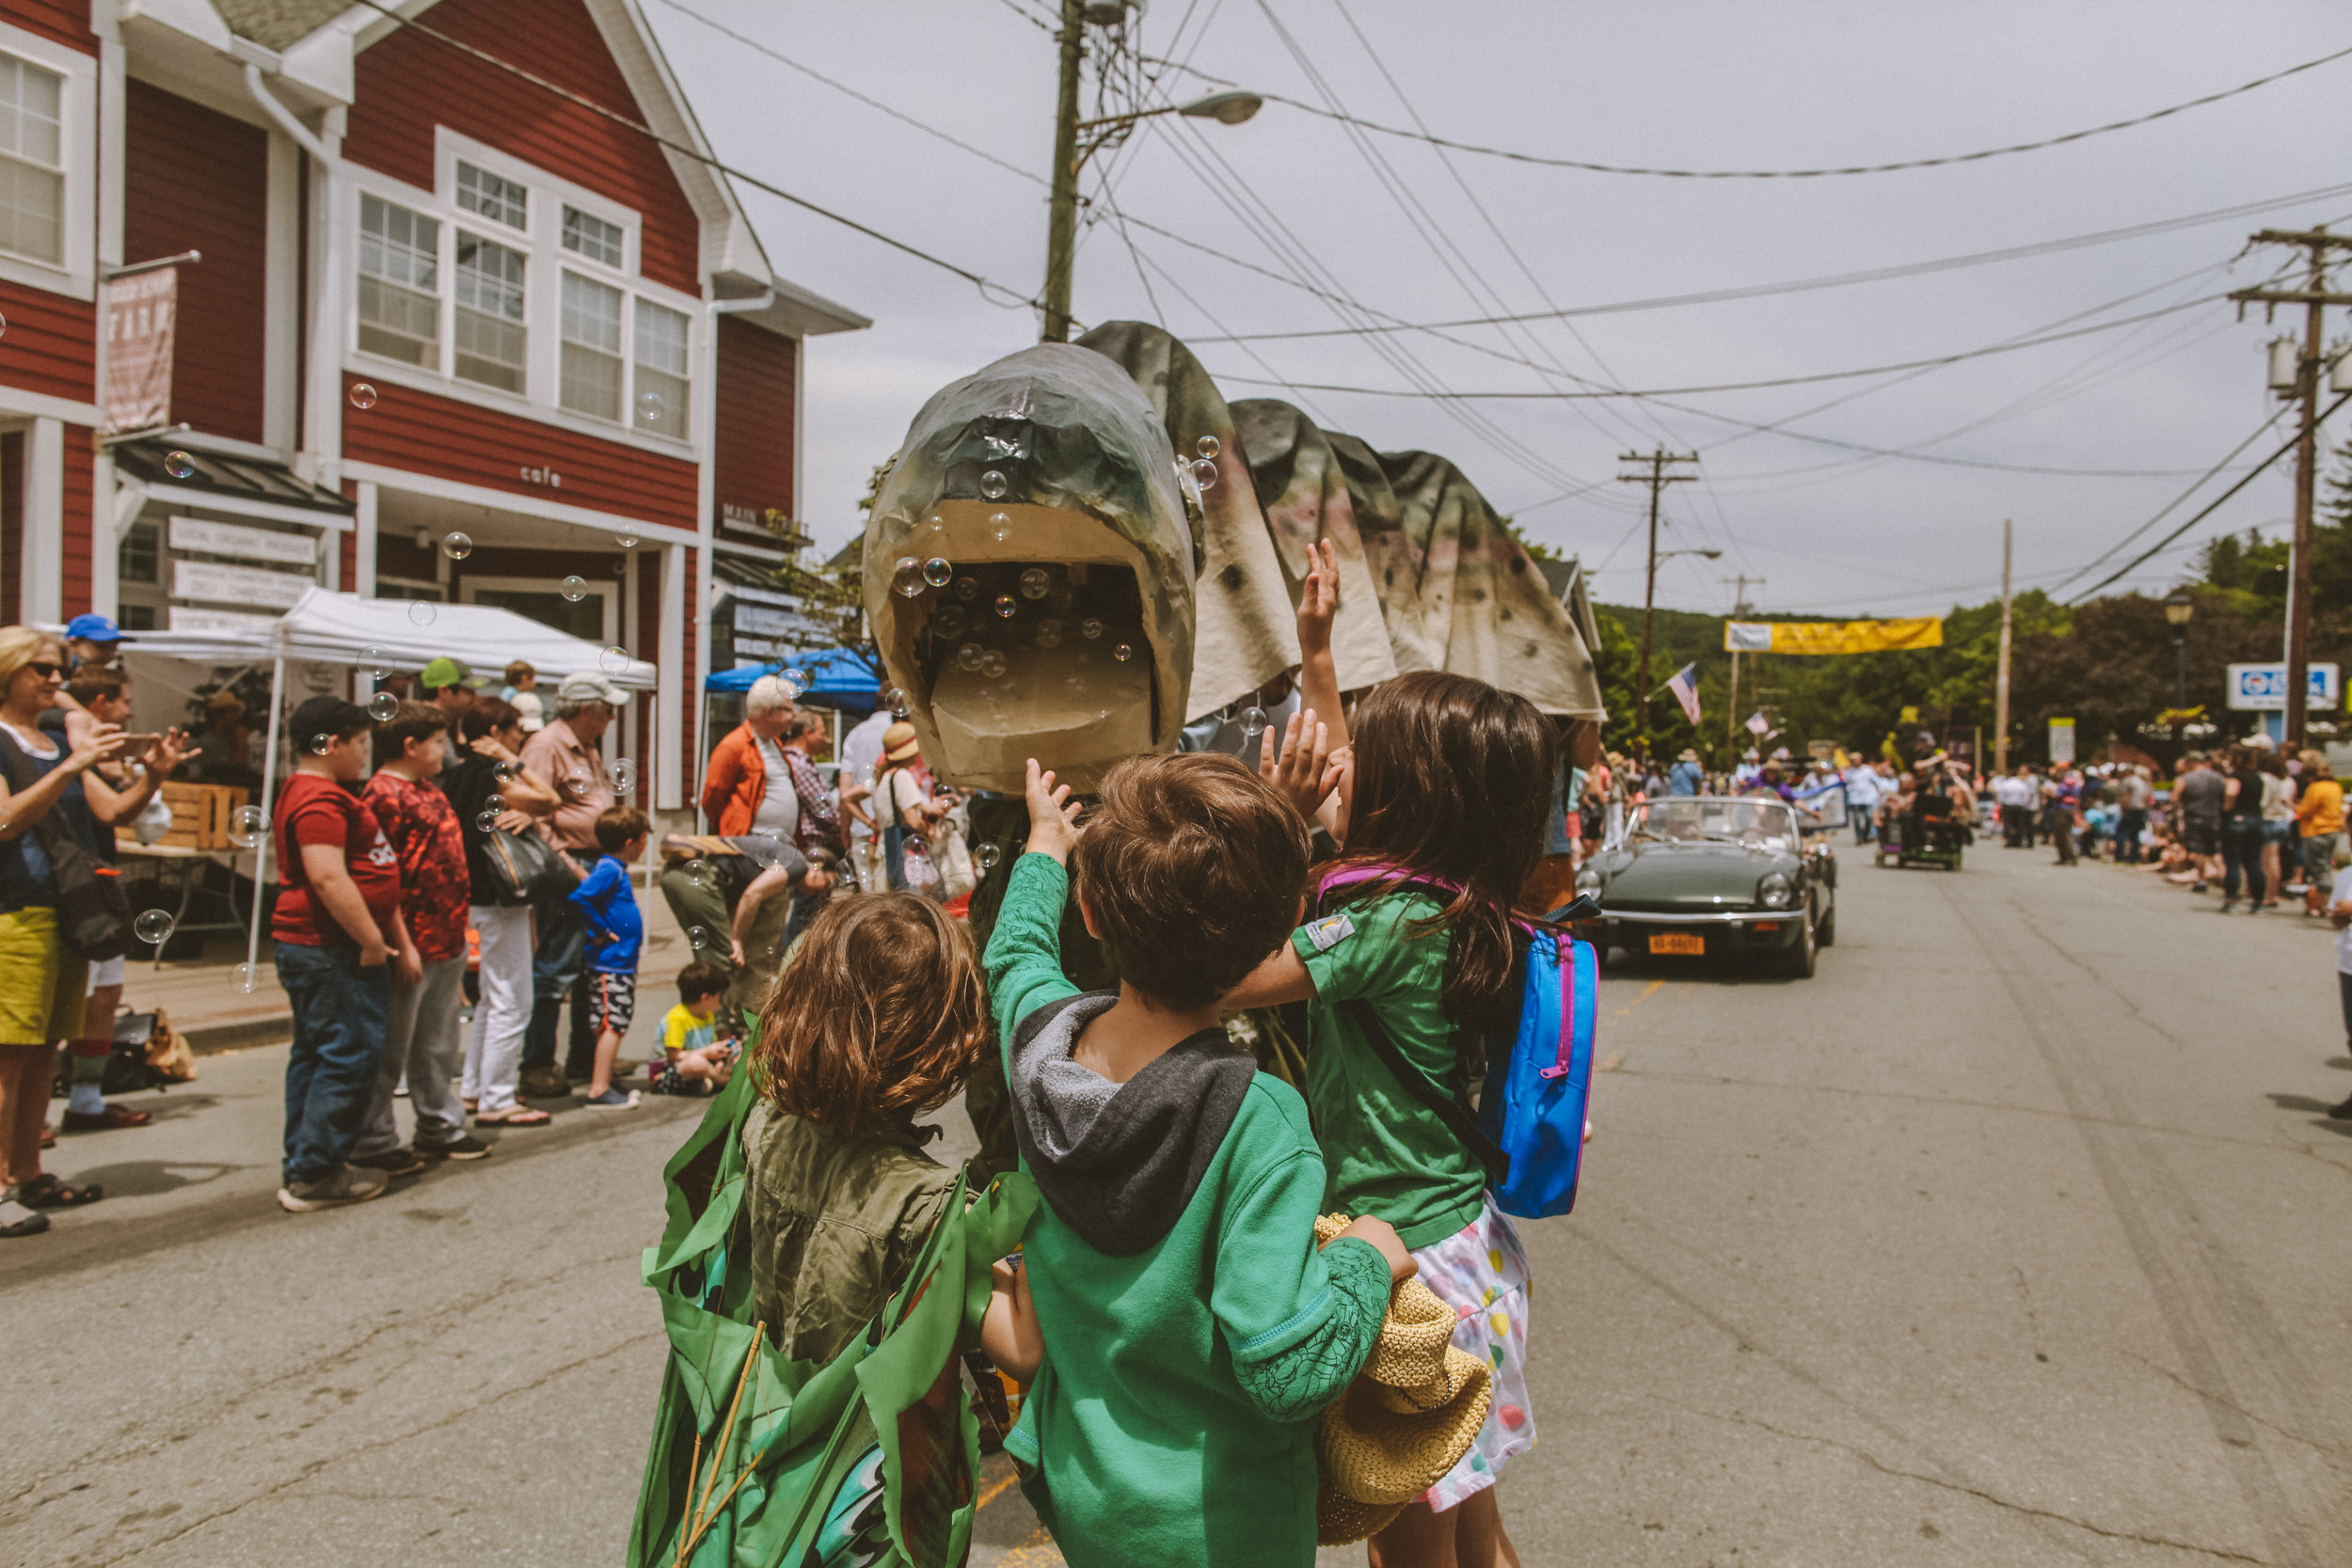 trout_parade_2018-38.jpg